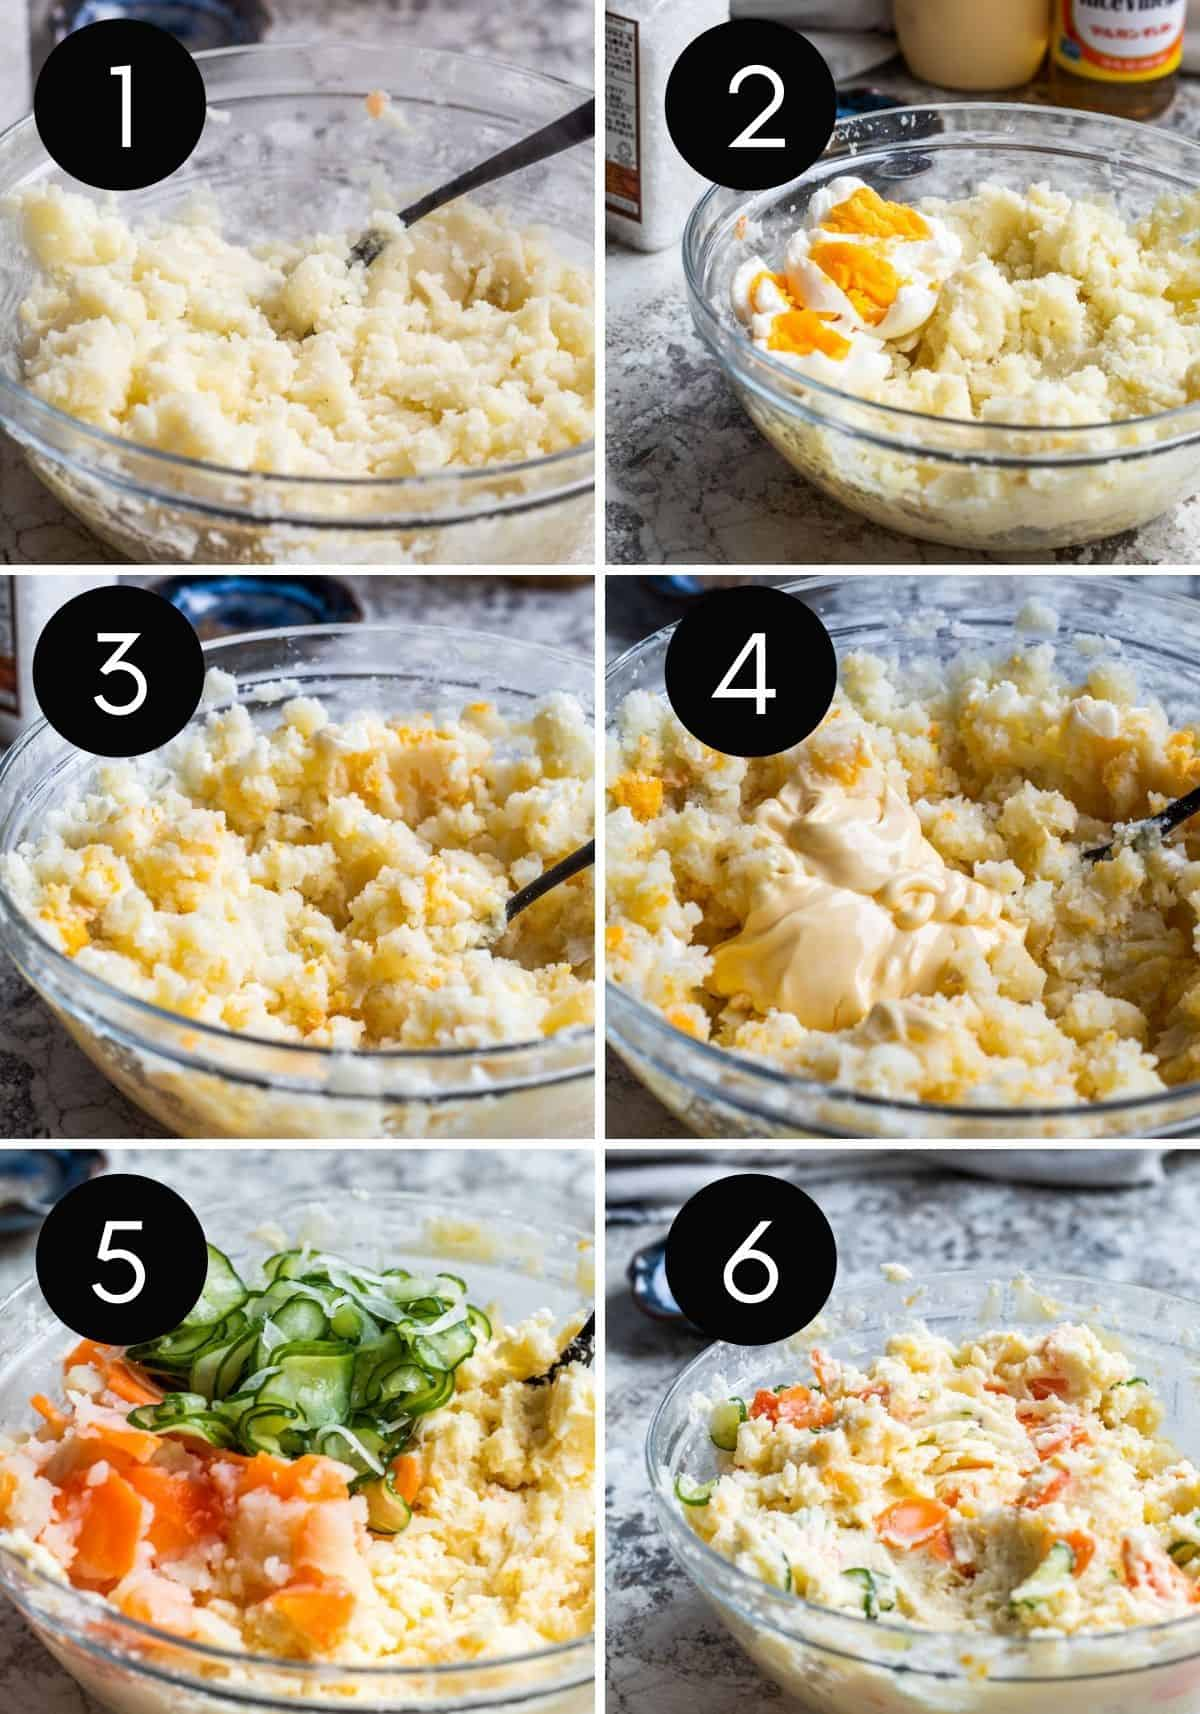 Six image collage chowing potato salad being mixed and combined.